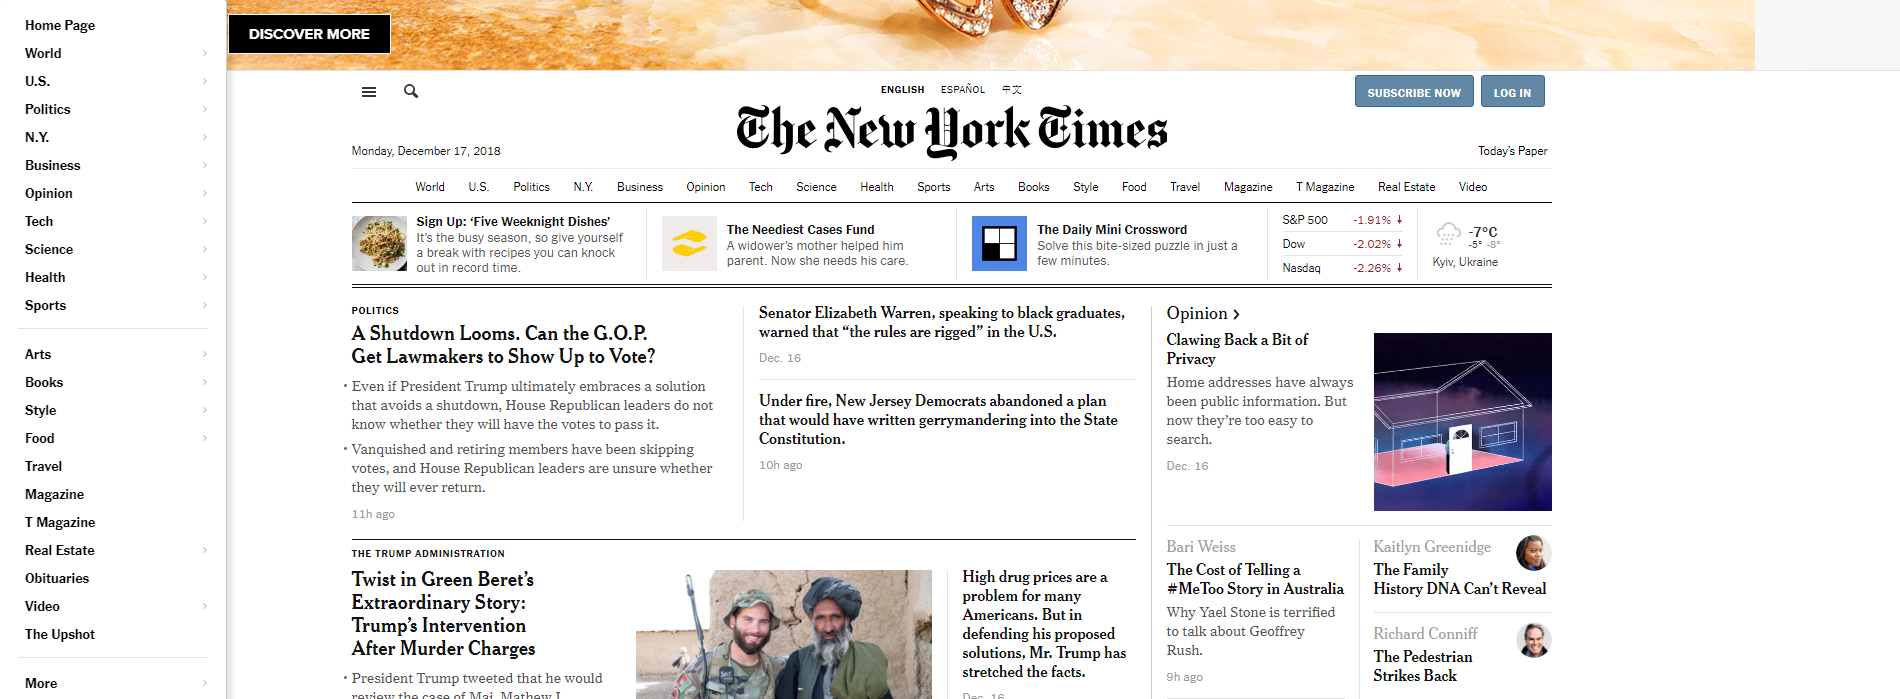 Left-sided menu on The New York Times